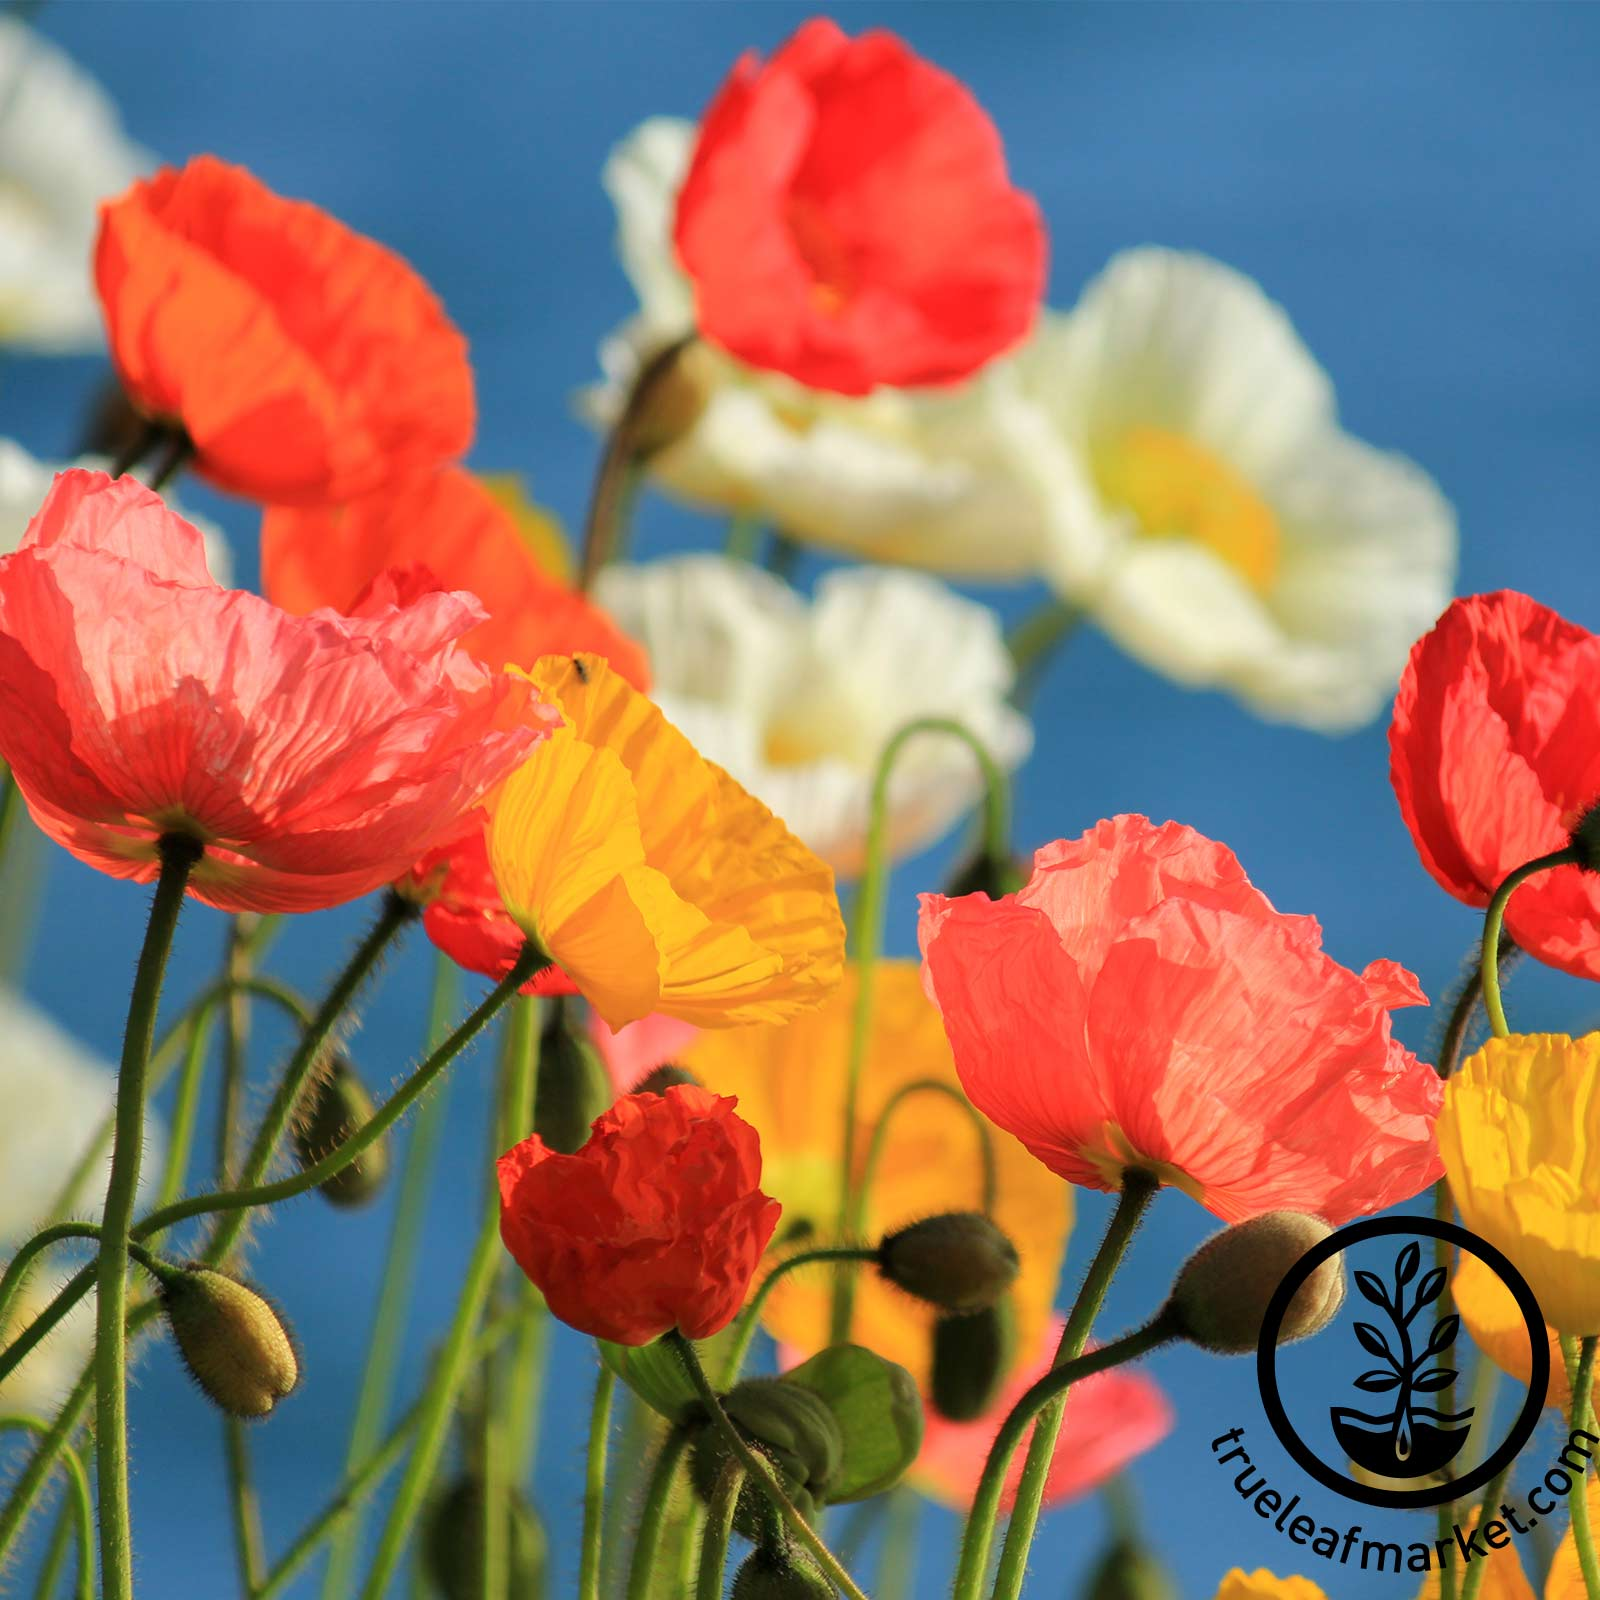 Poppy California Mission Bells Seed